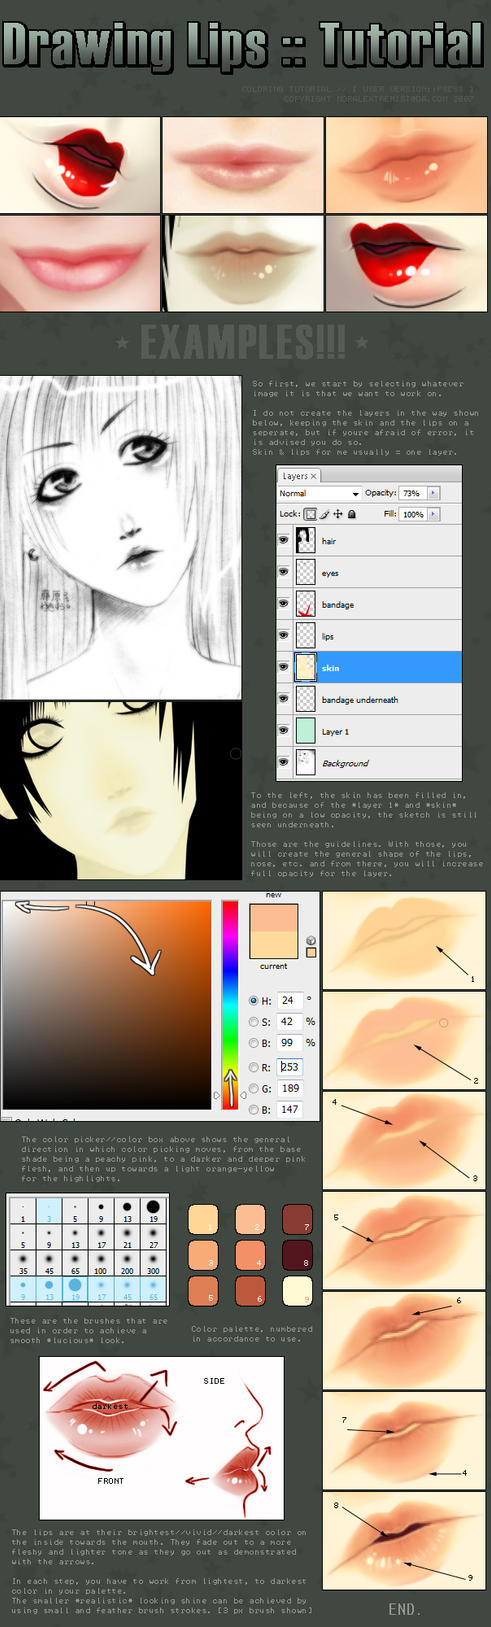 Drawing Lips :: Tutorial by moral-extremist